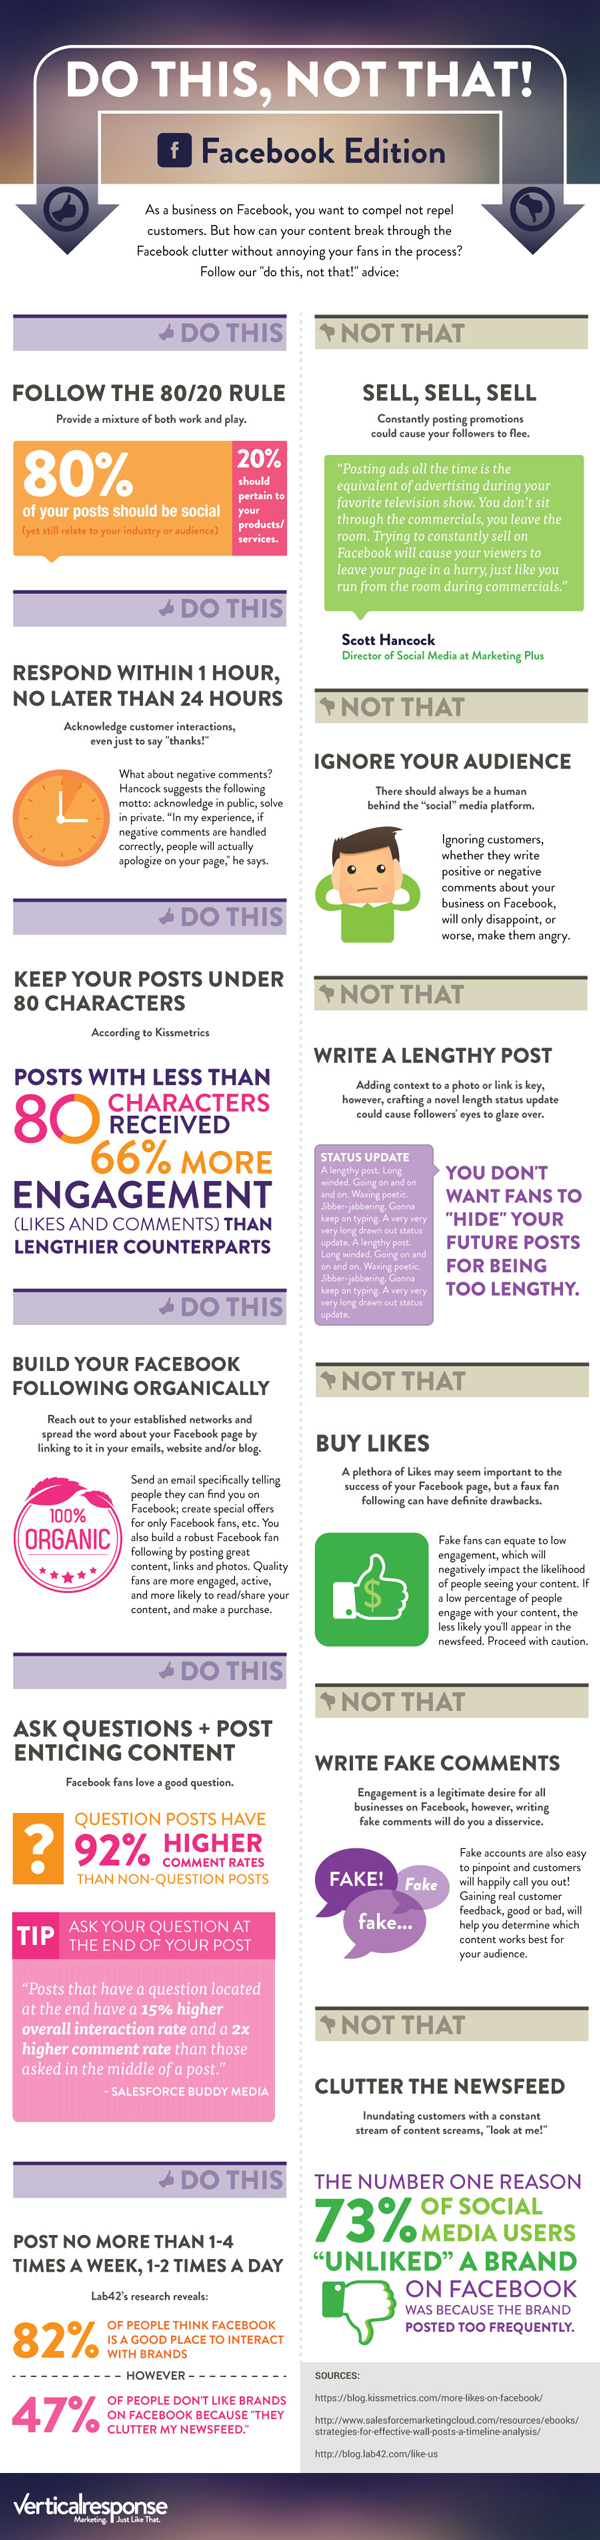 dothisnotthatfacebookeditioninfographic